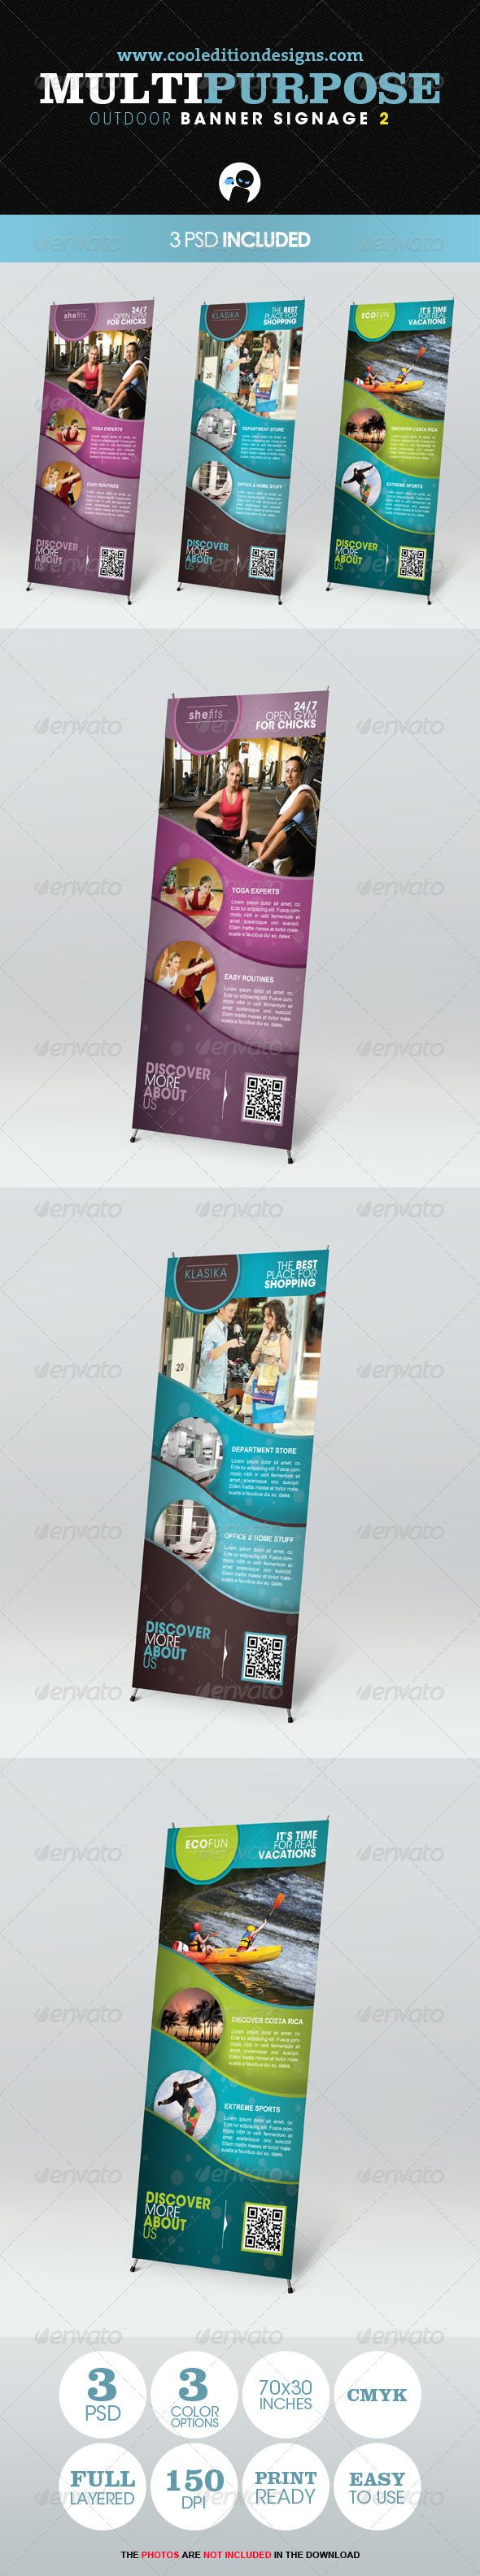 Multipurpose Outdoor Banner Signage 2 - Signage Print Templates